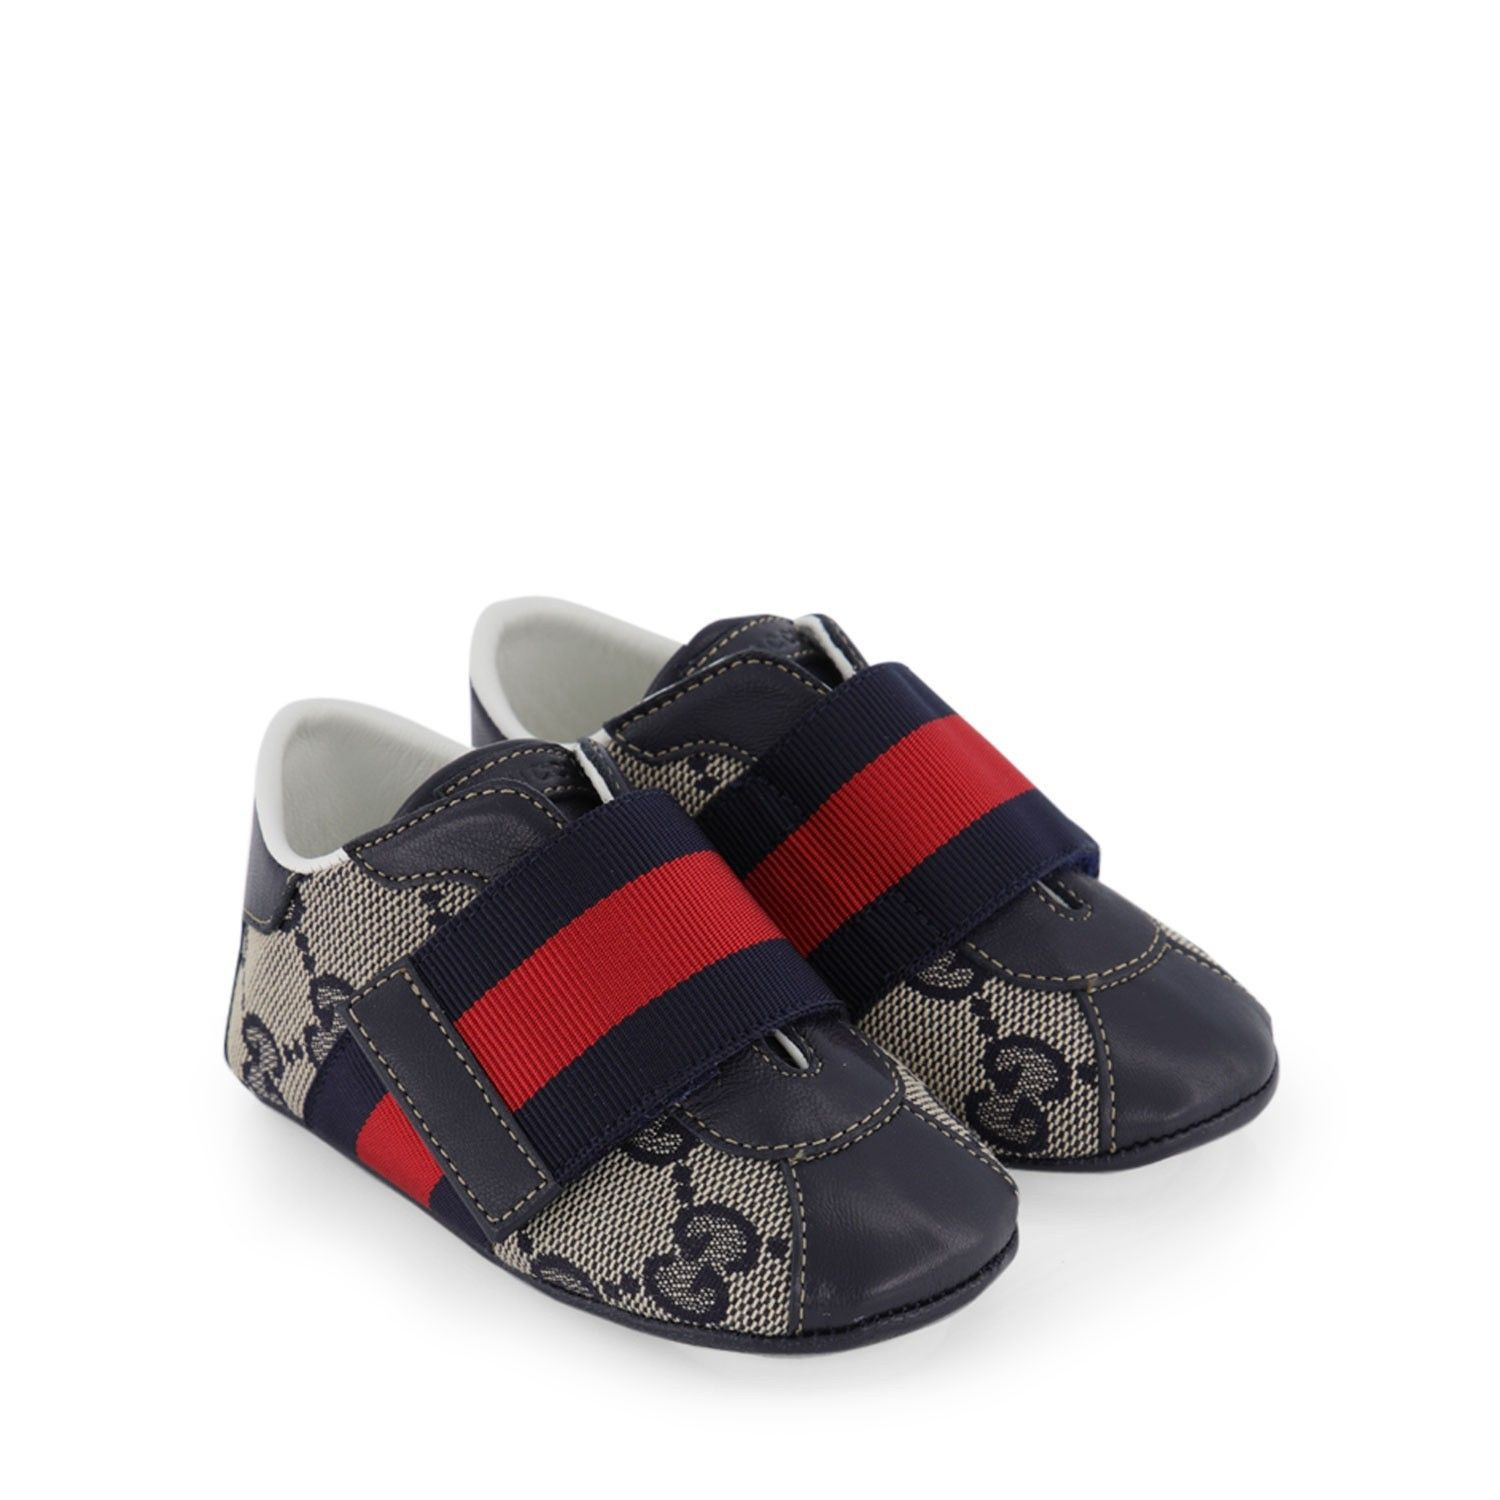 Picture of Gucci 285206 baby shoes navy